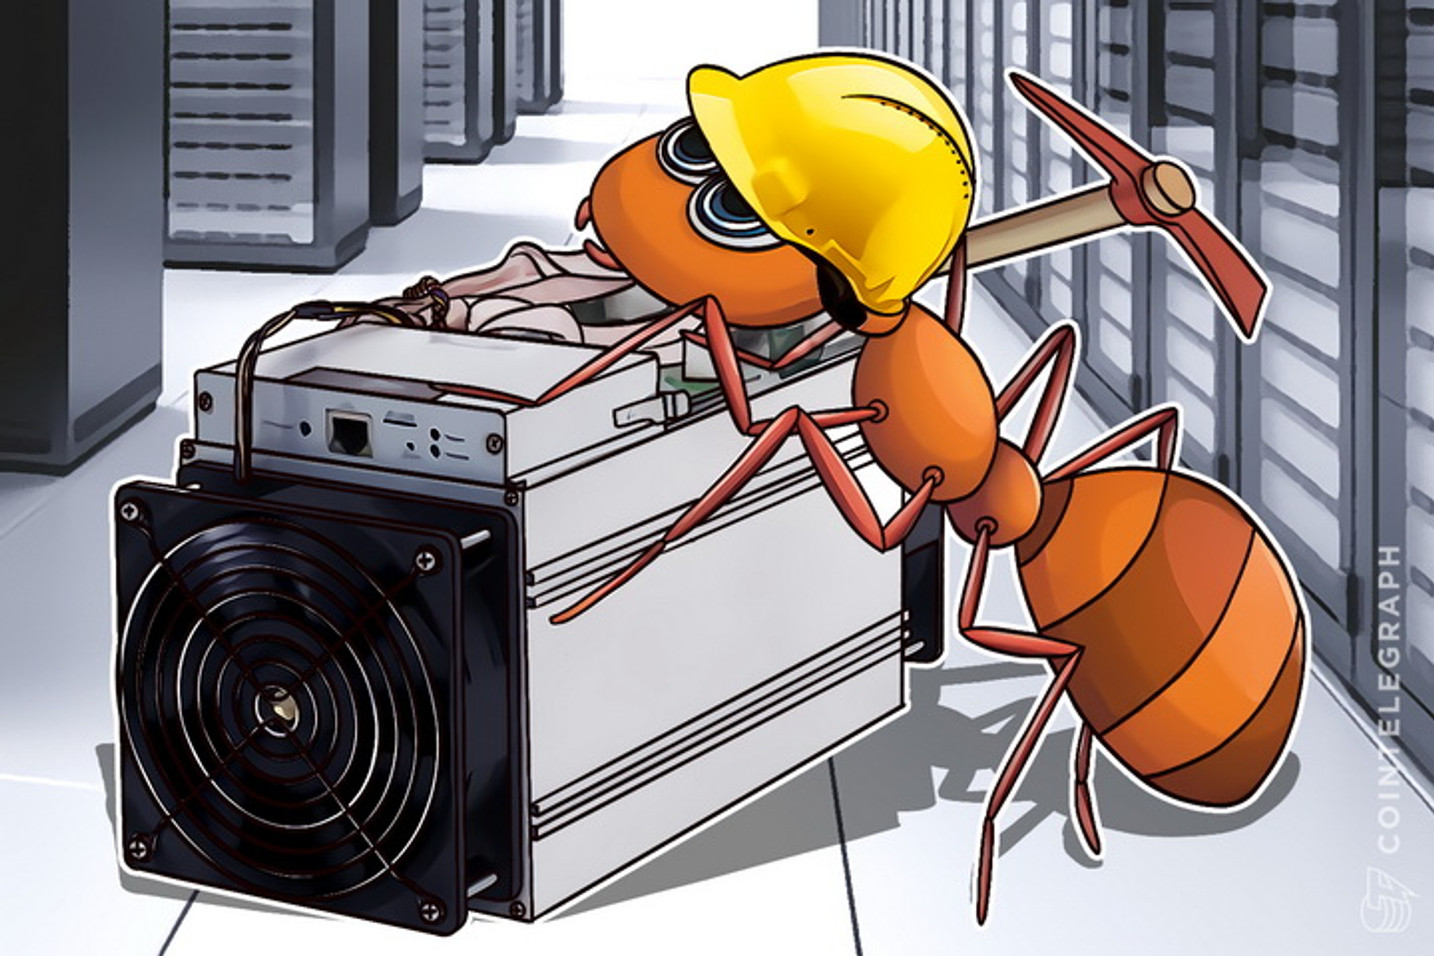 As Bitcoin Mining Stabilizes, Bitmain Announces the Release of its New S9 ASIC Miner